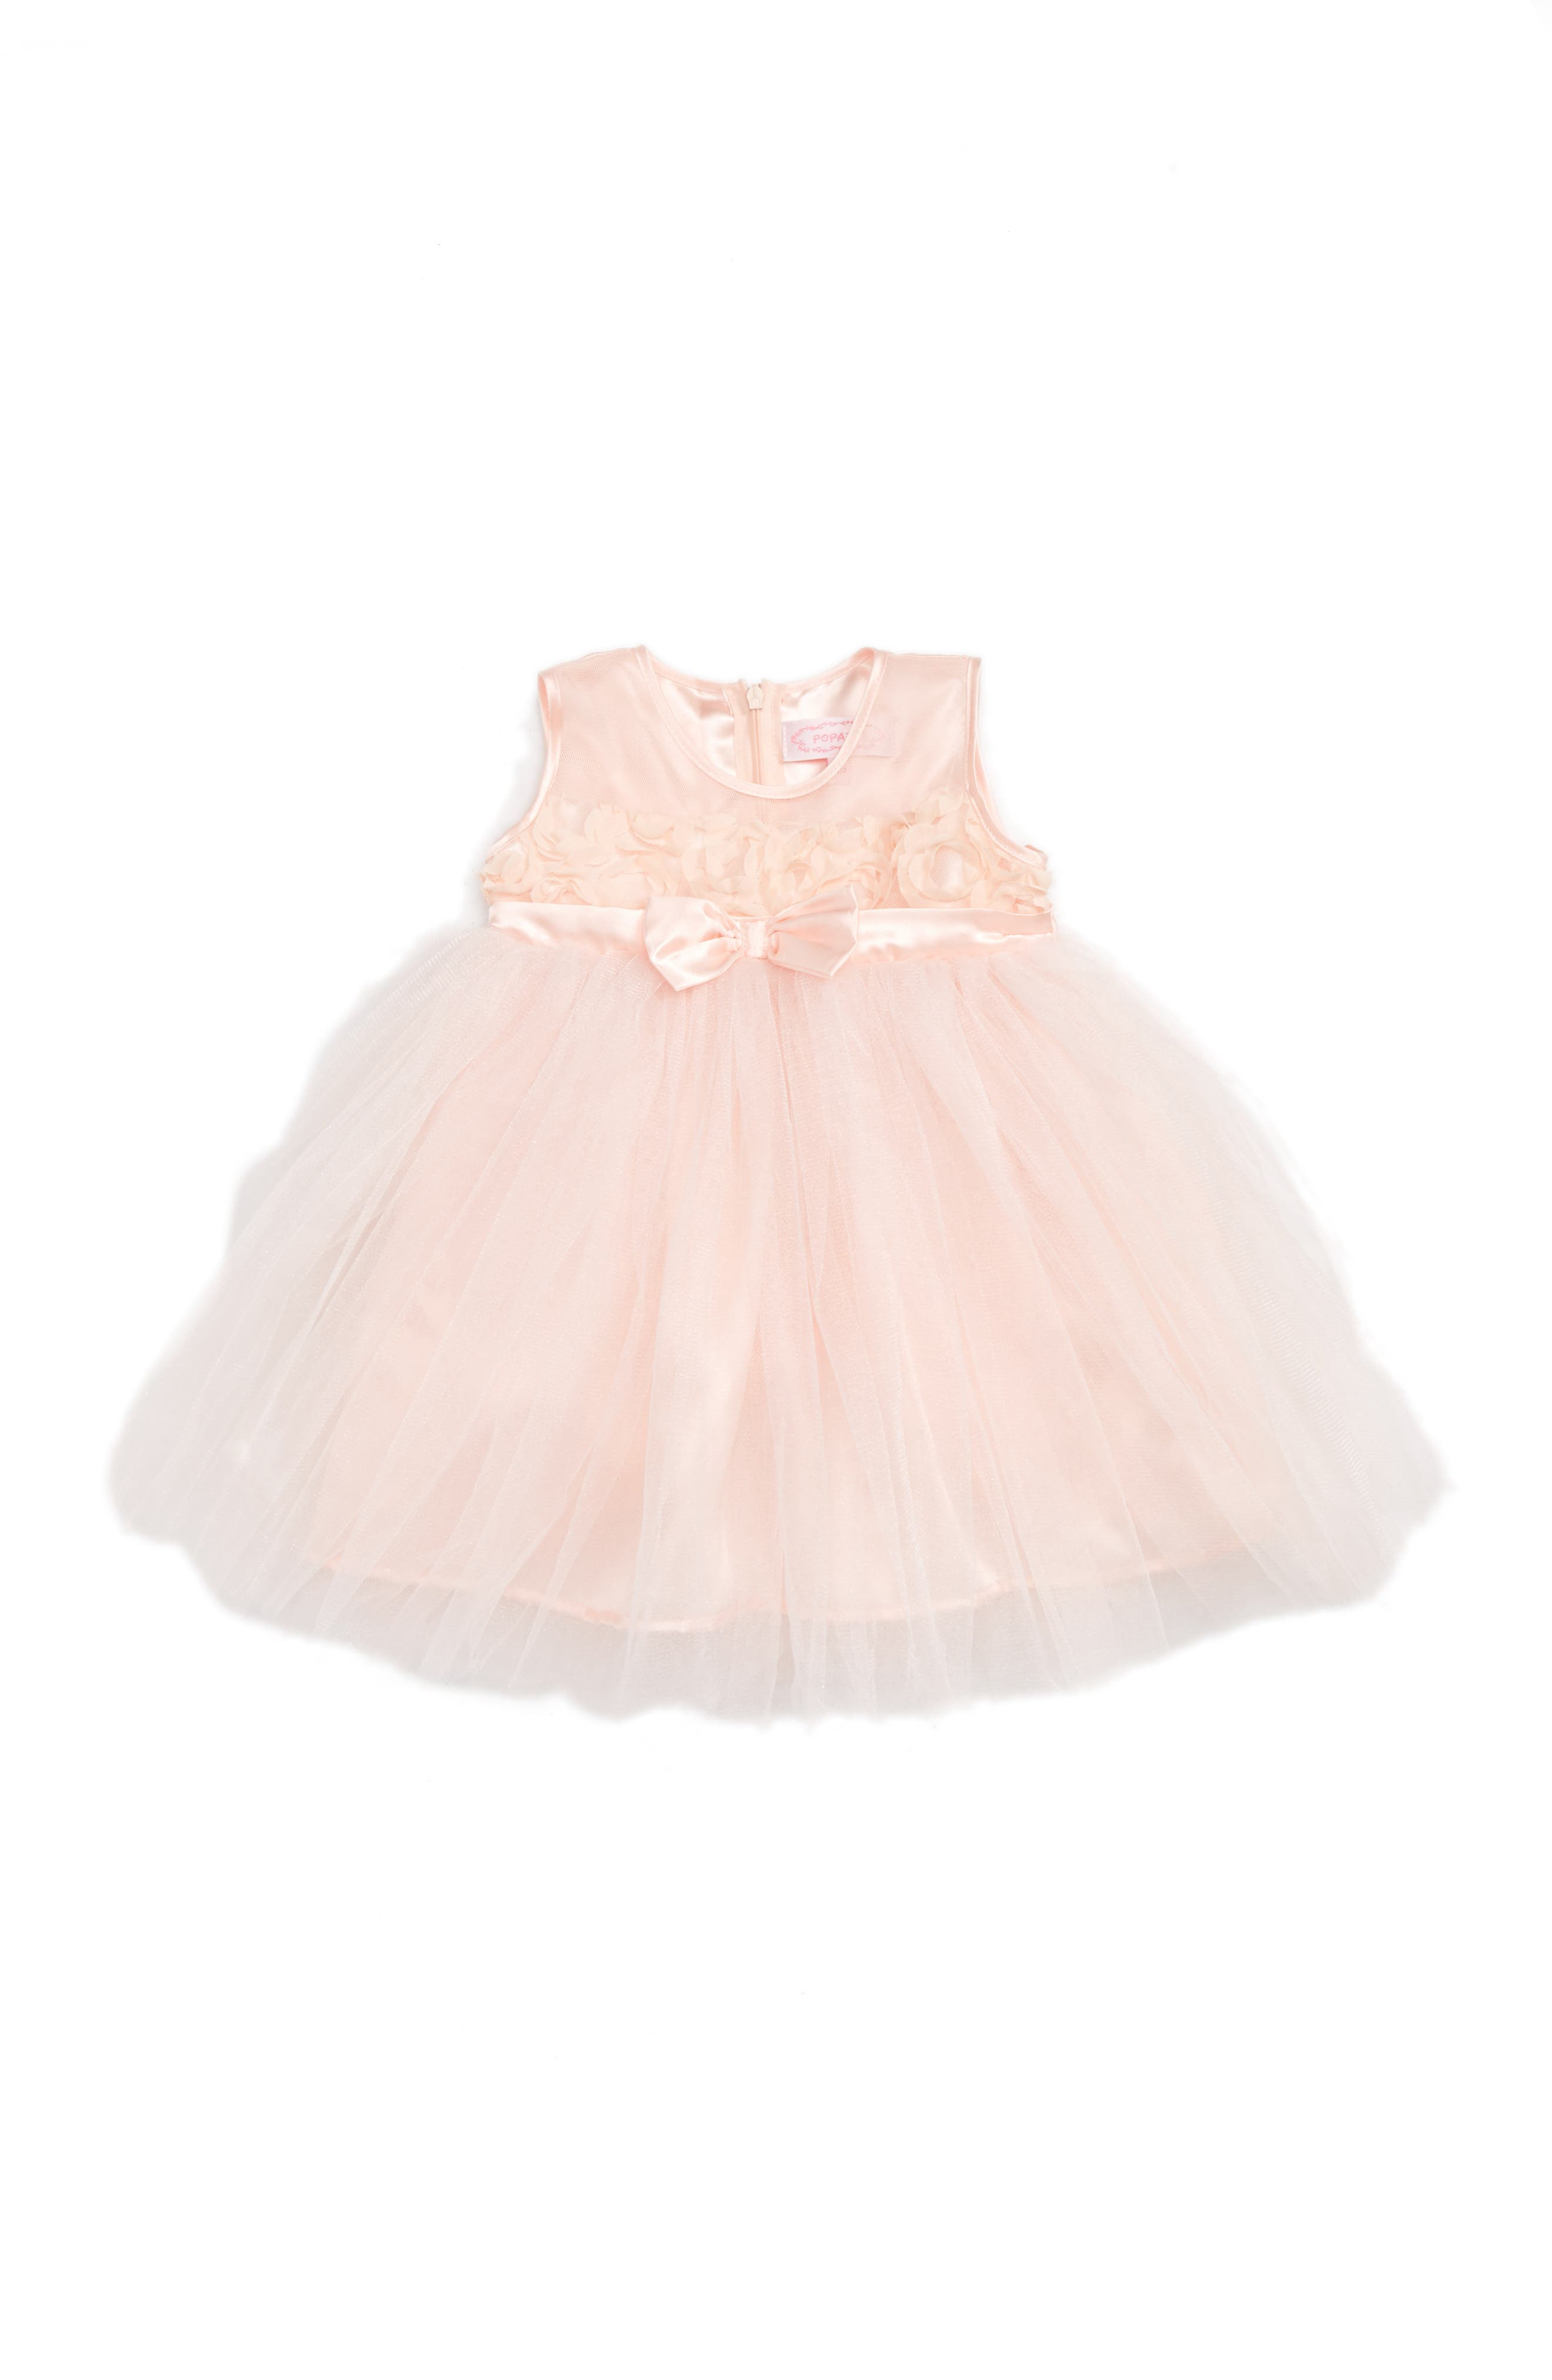 Sleeveless Tulle Dress,                             Main thumbnail 1, color,                             680